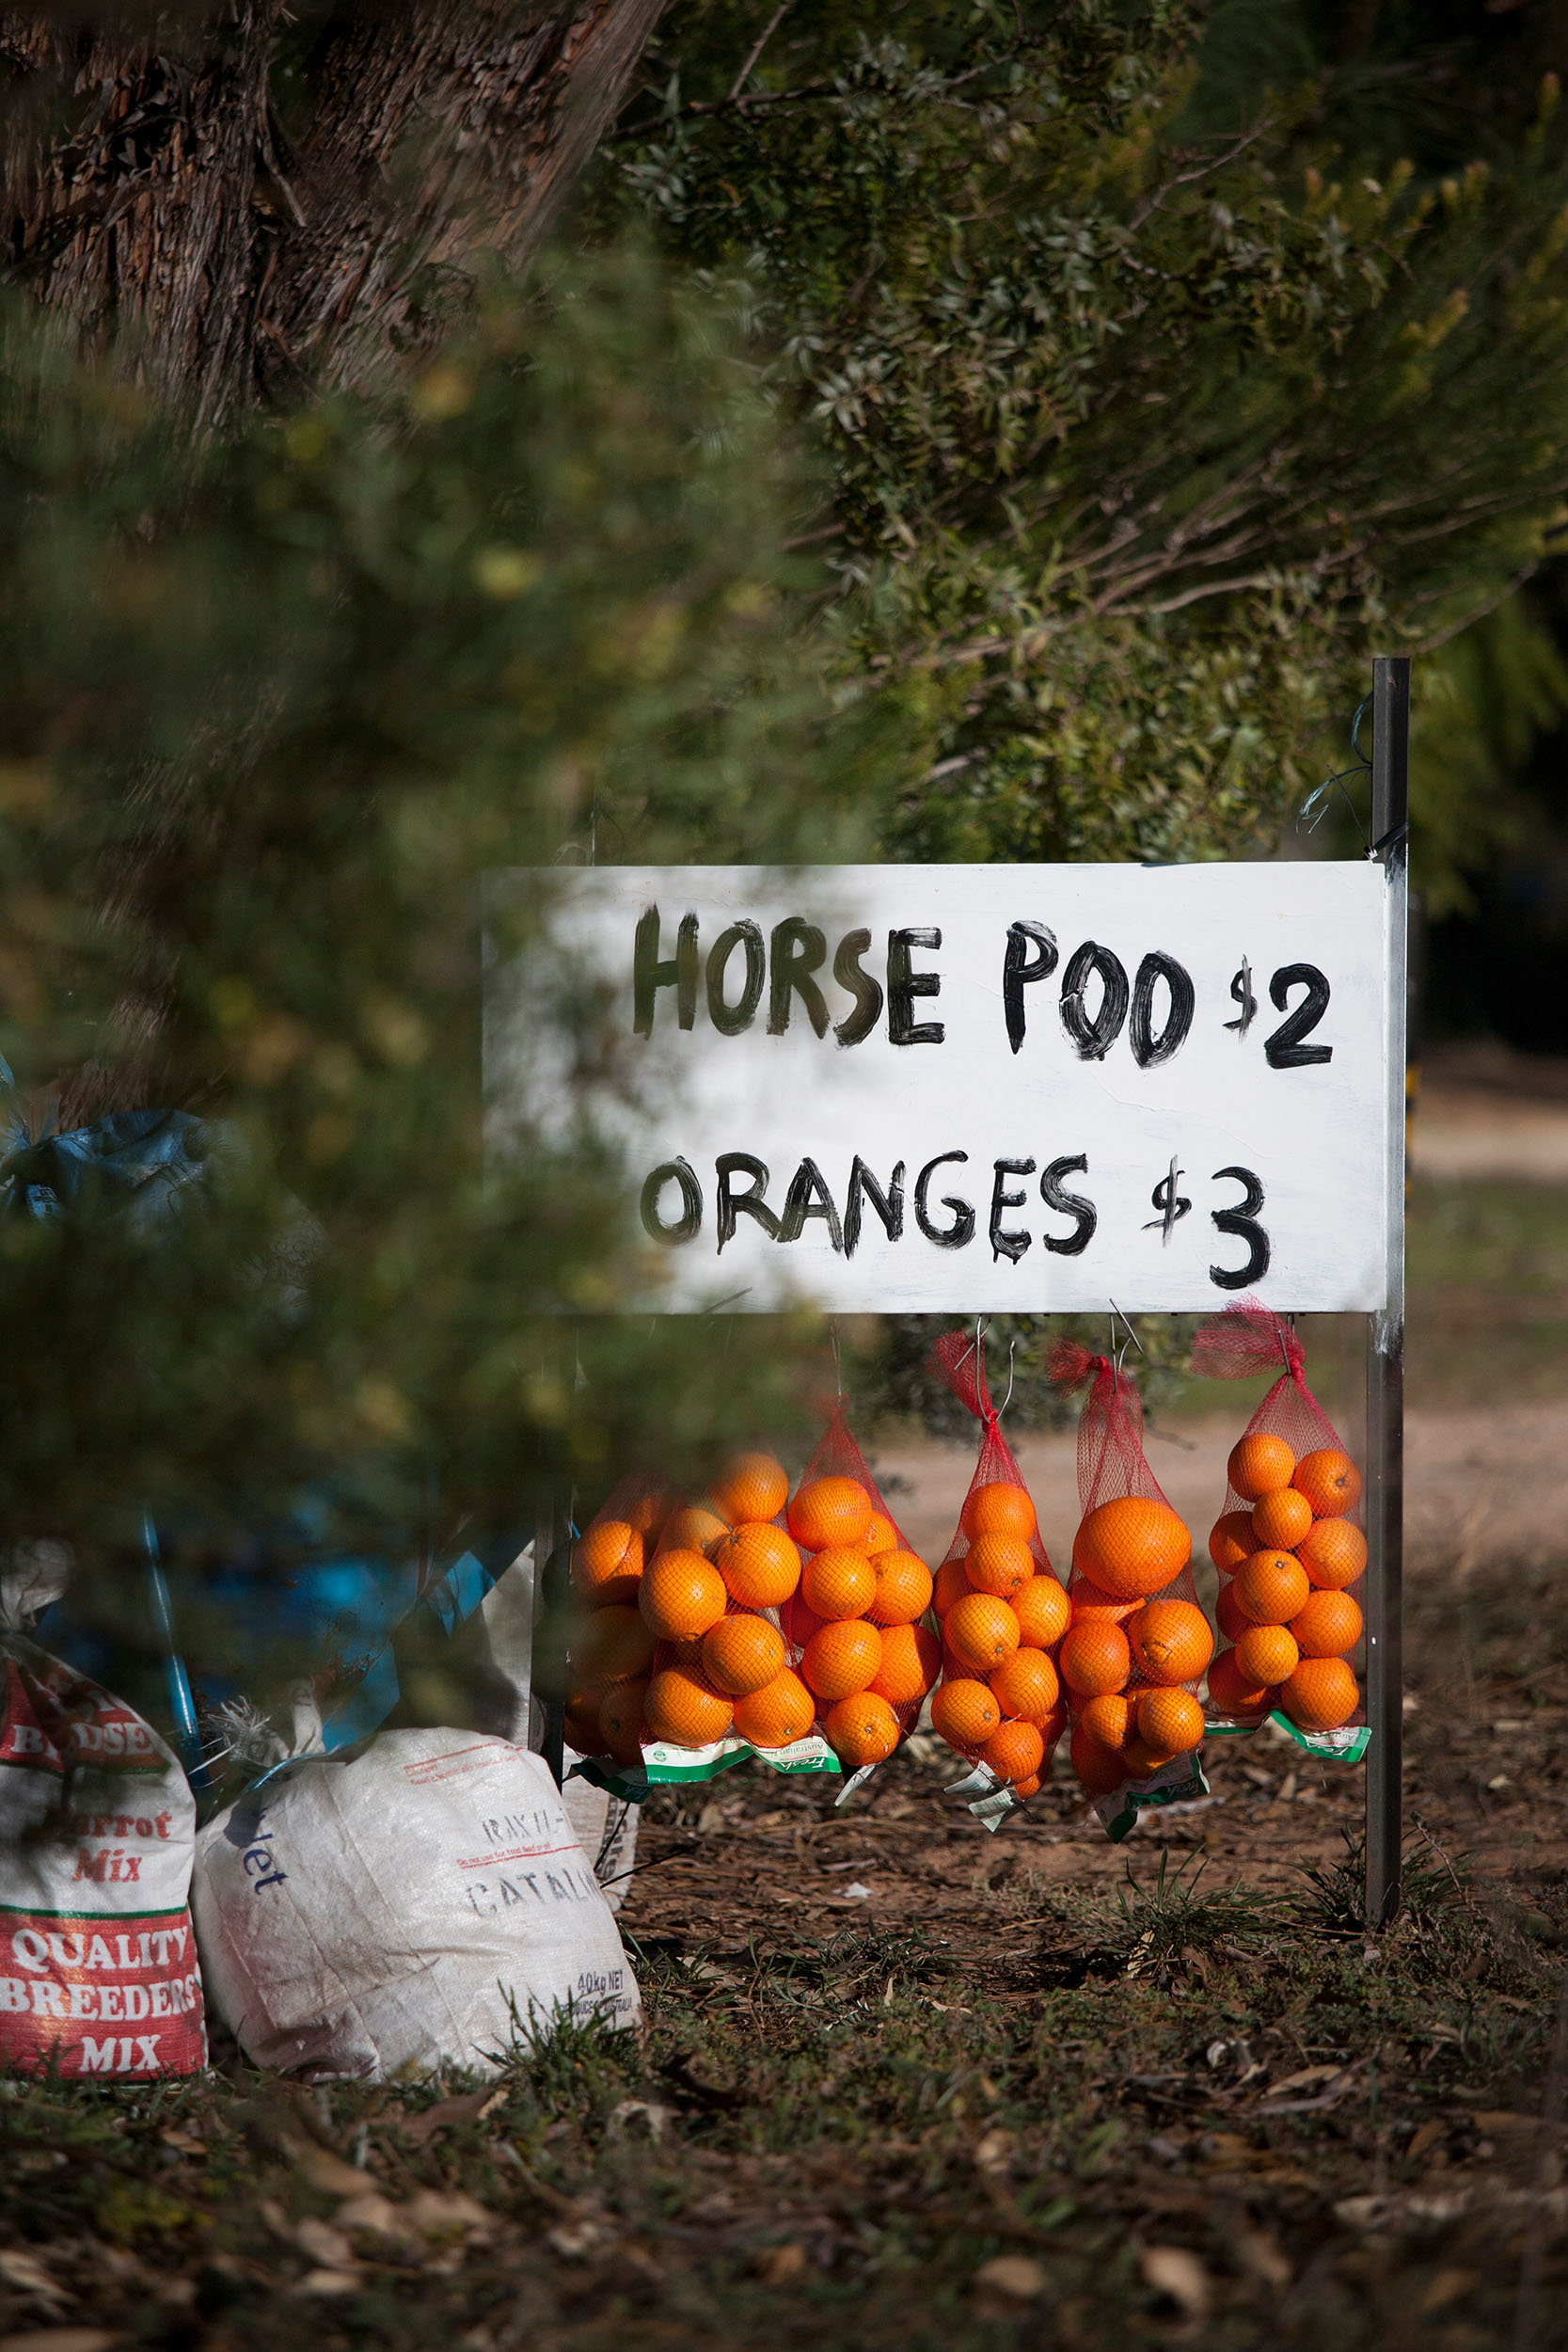 Roadside stall selling horse poo and oranges, Loxton area, SA.